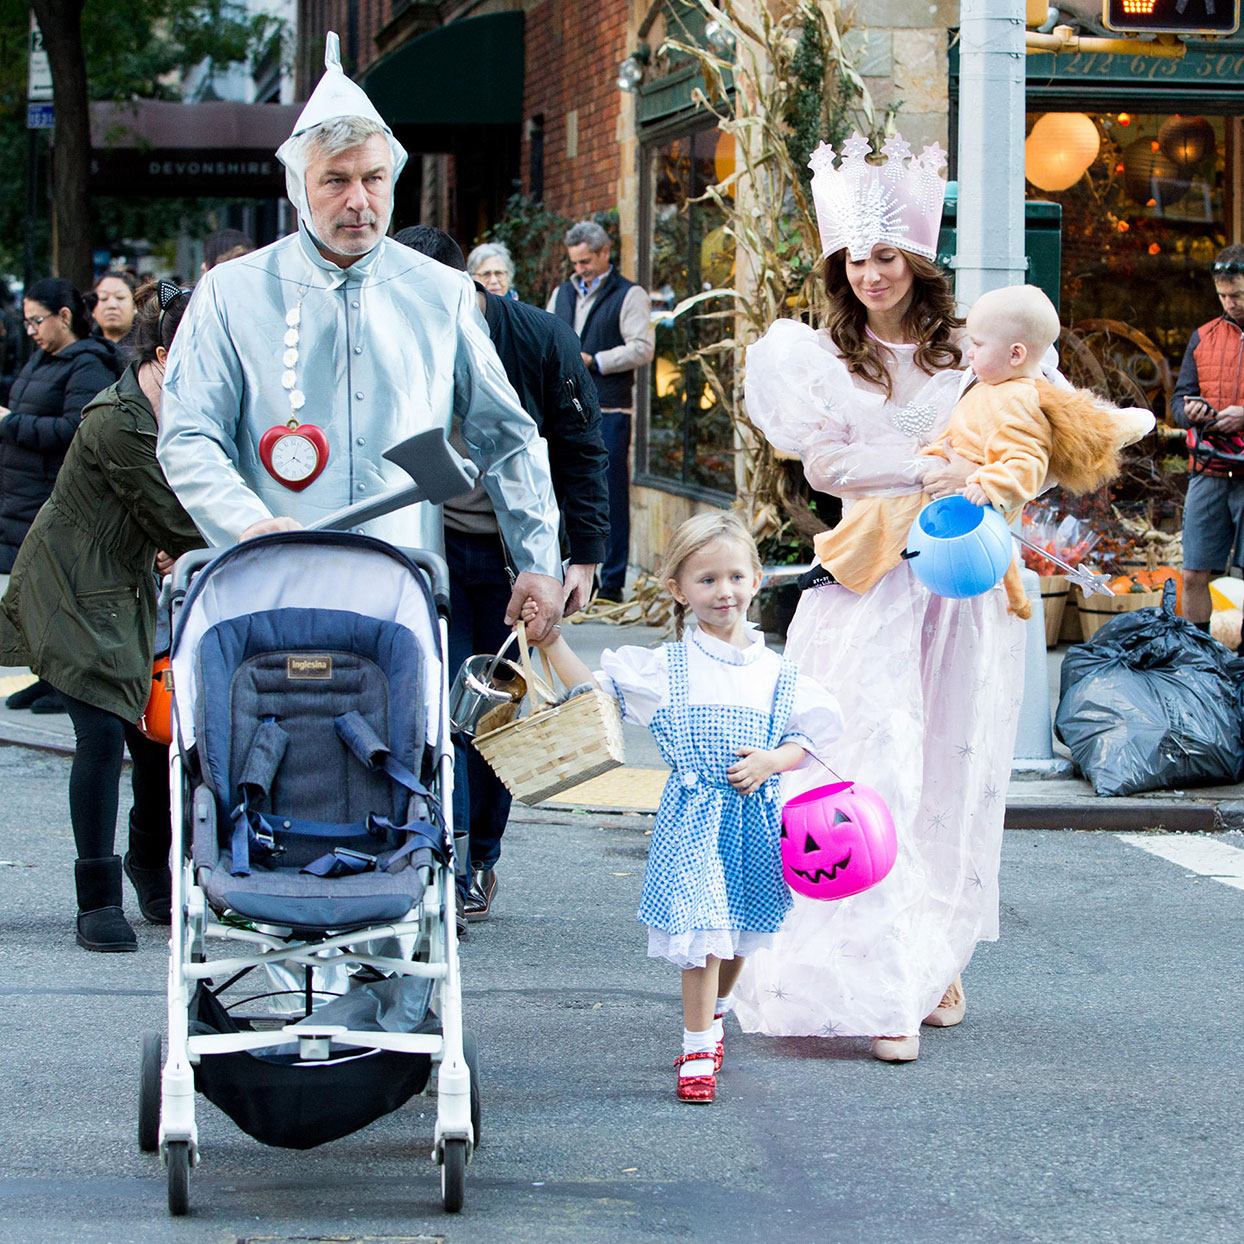 The Baldwin family dressed as Wizard of Oz characters for Halloween